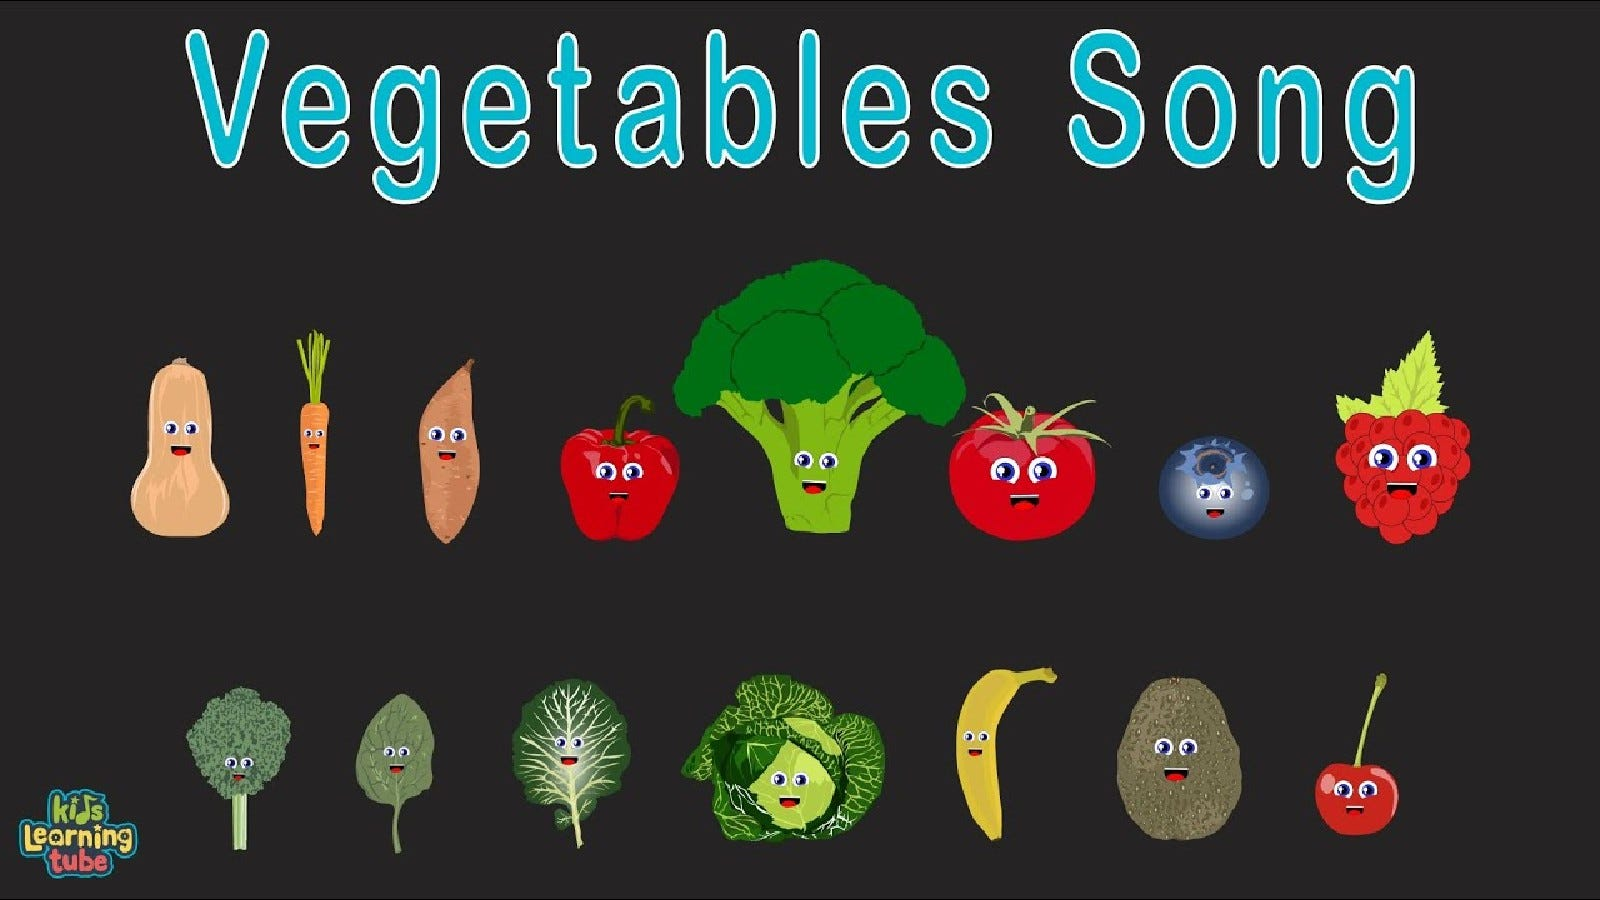 A promotional image for Kids Learning Tube, showing vegetables singing the vegetable song.